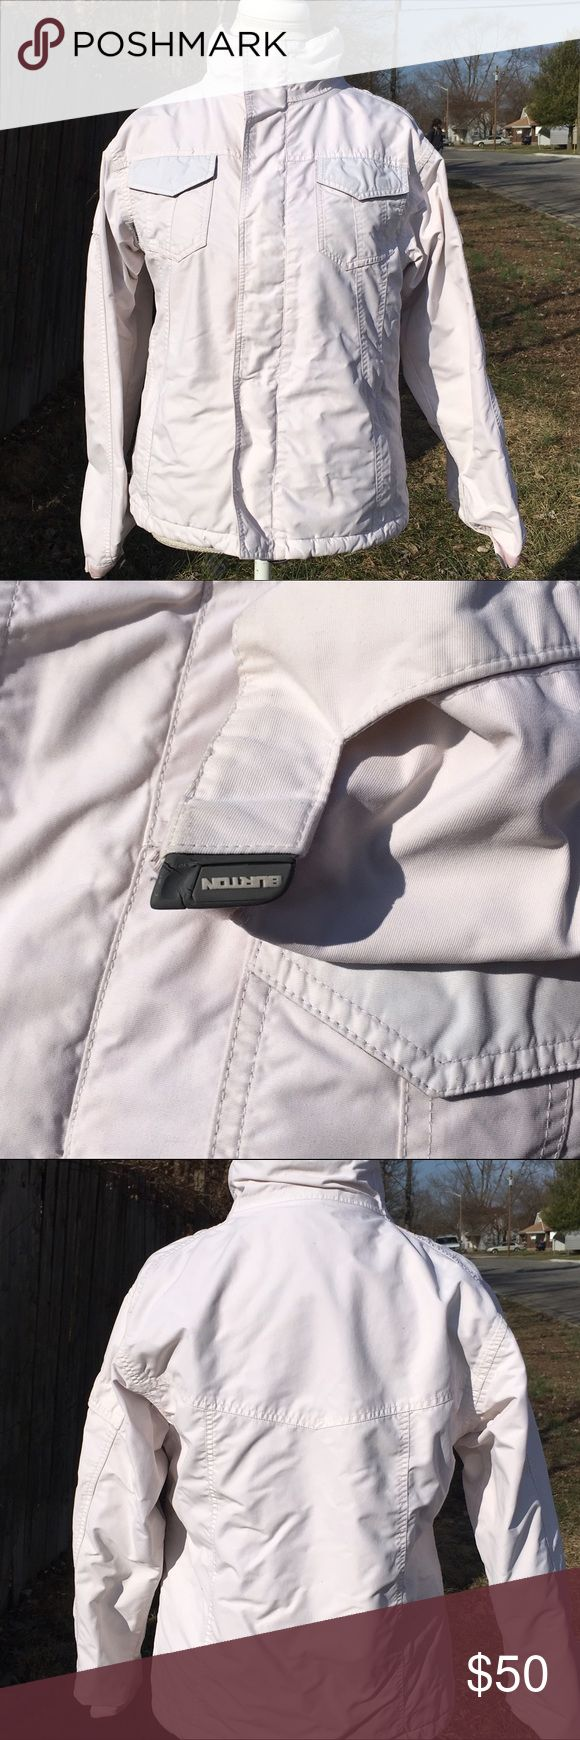 Burton Snowboards Coat Off white Burton coat in great condition. The lining is excellent except the ID holder on the inside is ripped. Burton Jackets & Coats Puffers